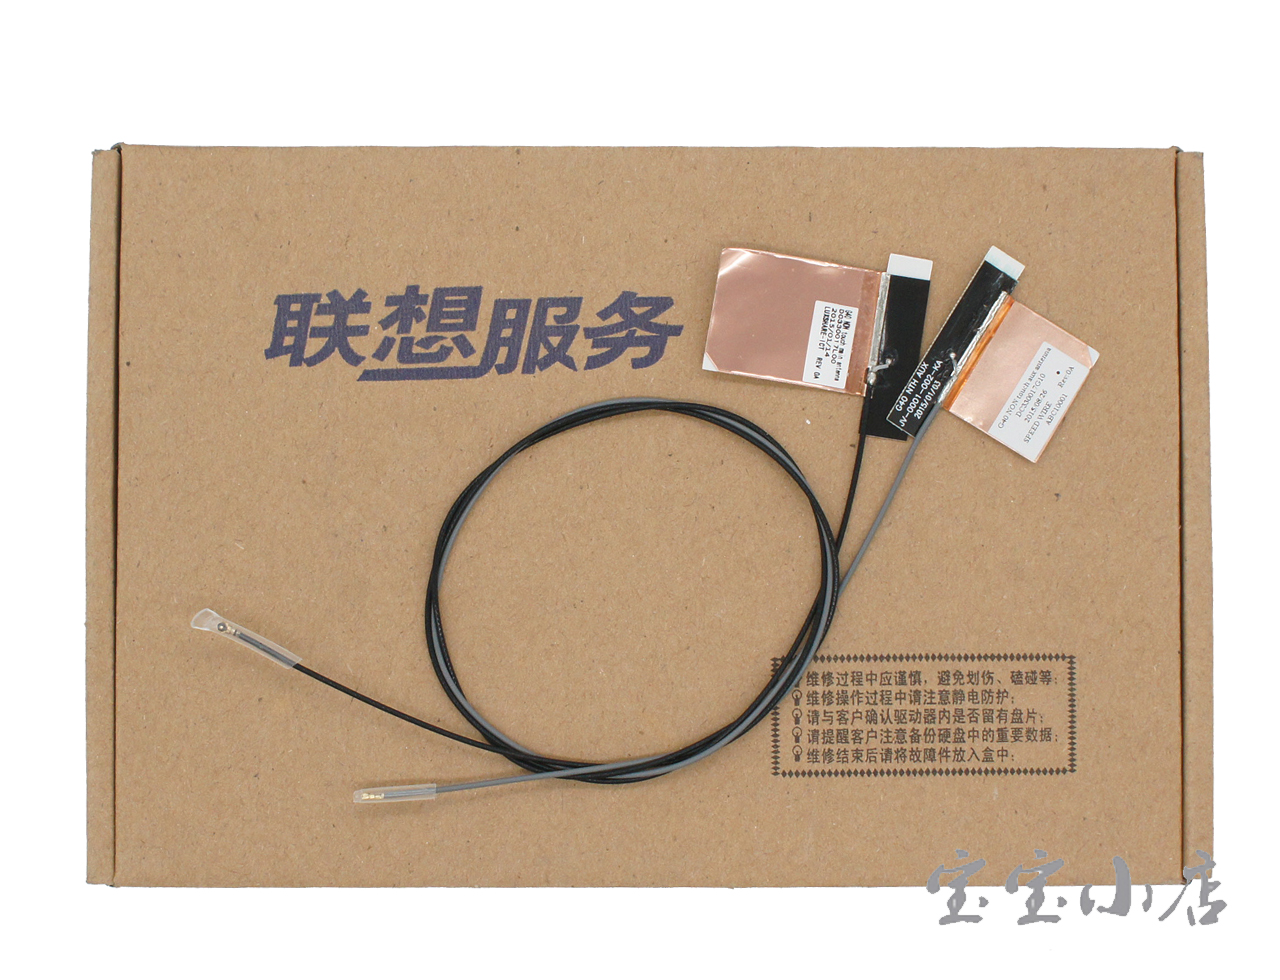 新到11000pcs DC330017L00 DC330017G10 WiFi Wireless Cables Antenna Cable 联想lenovo g40-30 g40-45 g40-70 75 天线 无线网卡天线